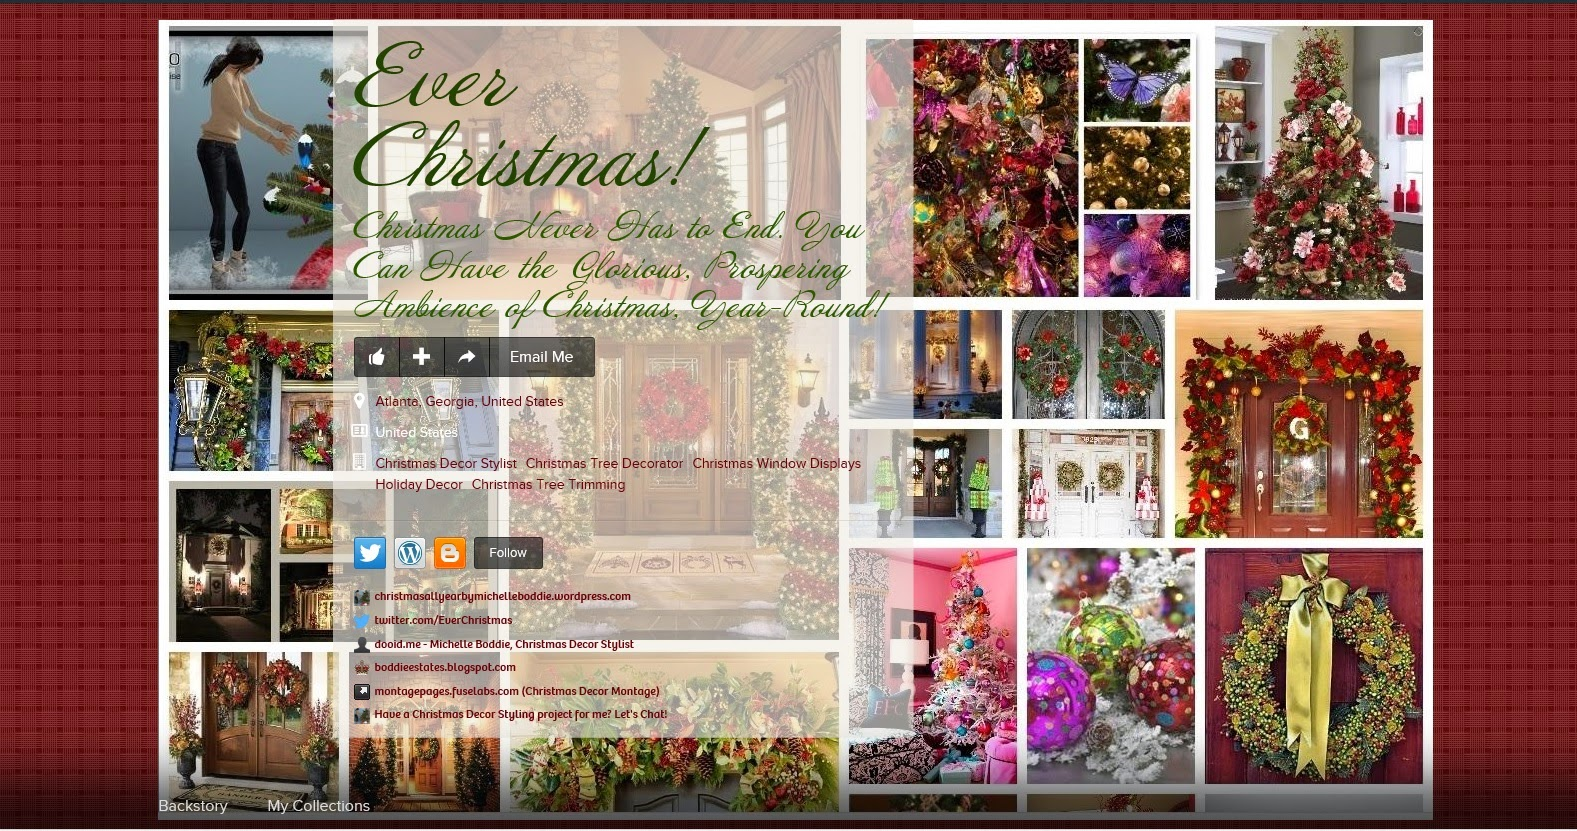 Christmas All Year offers Year-round Christmas Decor Staging/Styling on About.me!